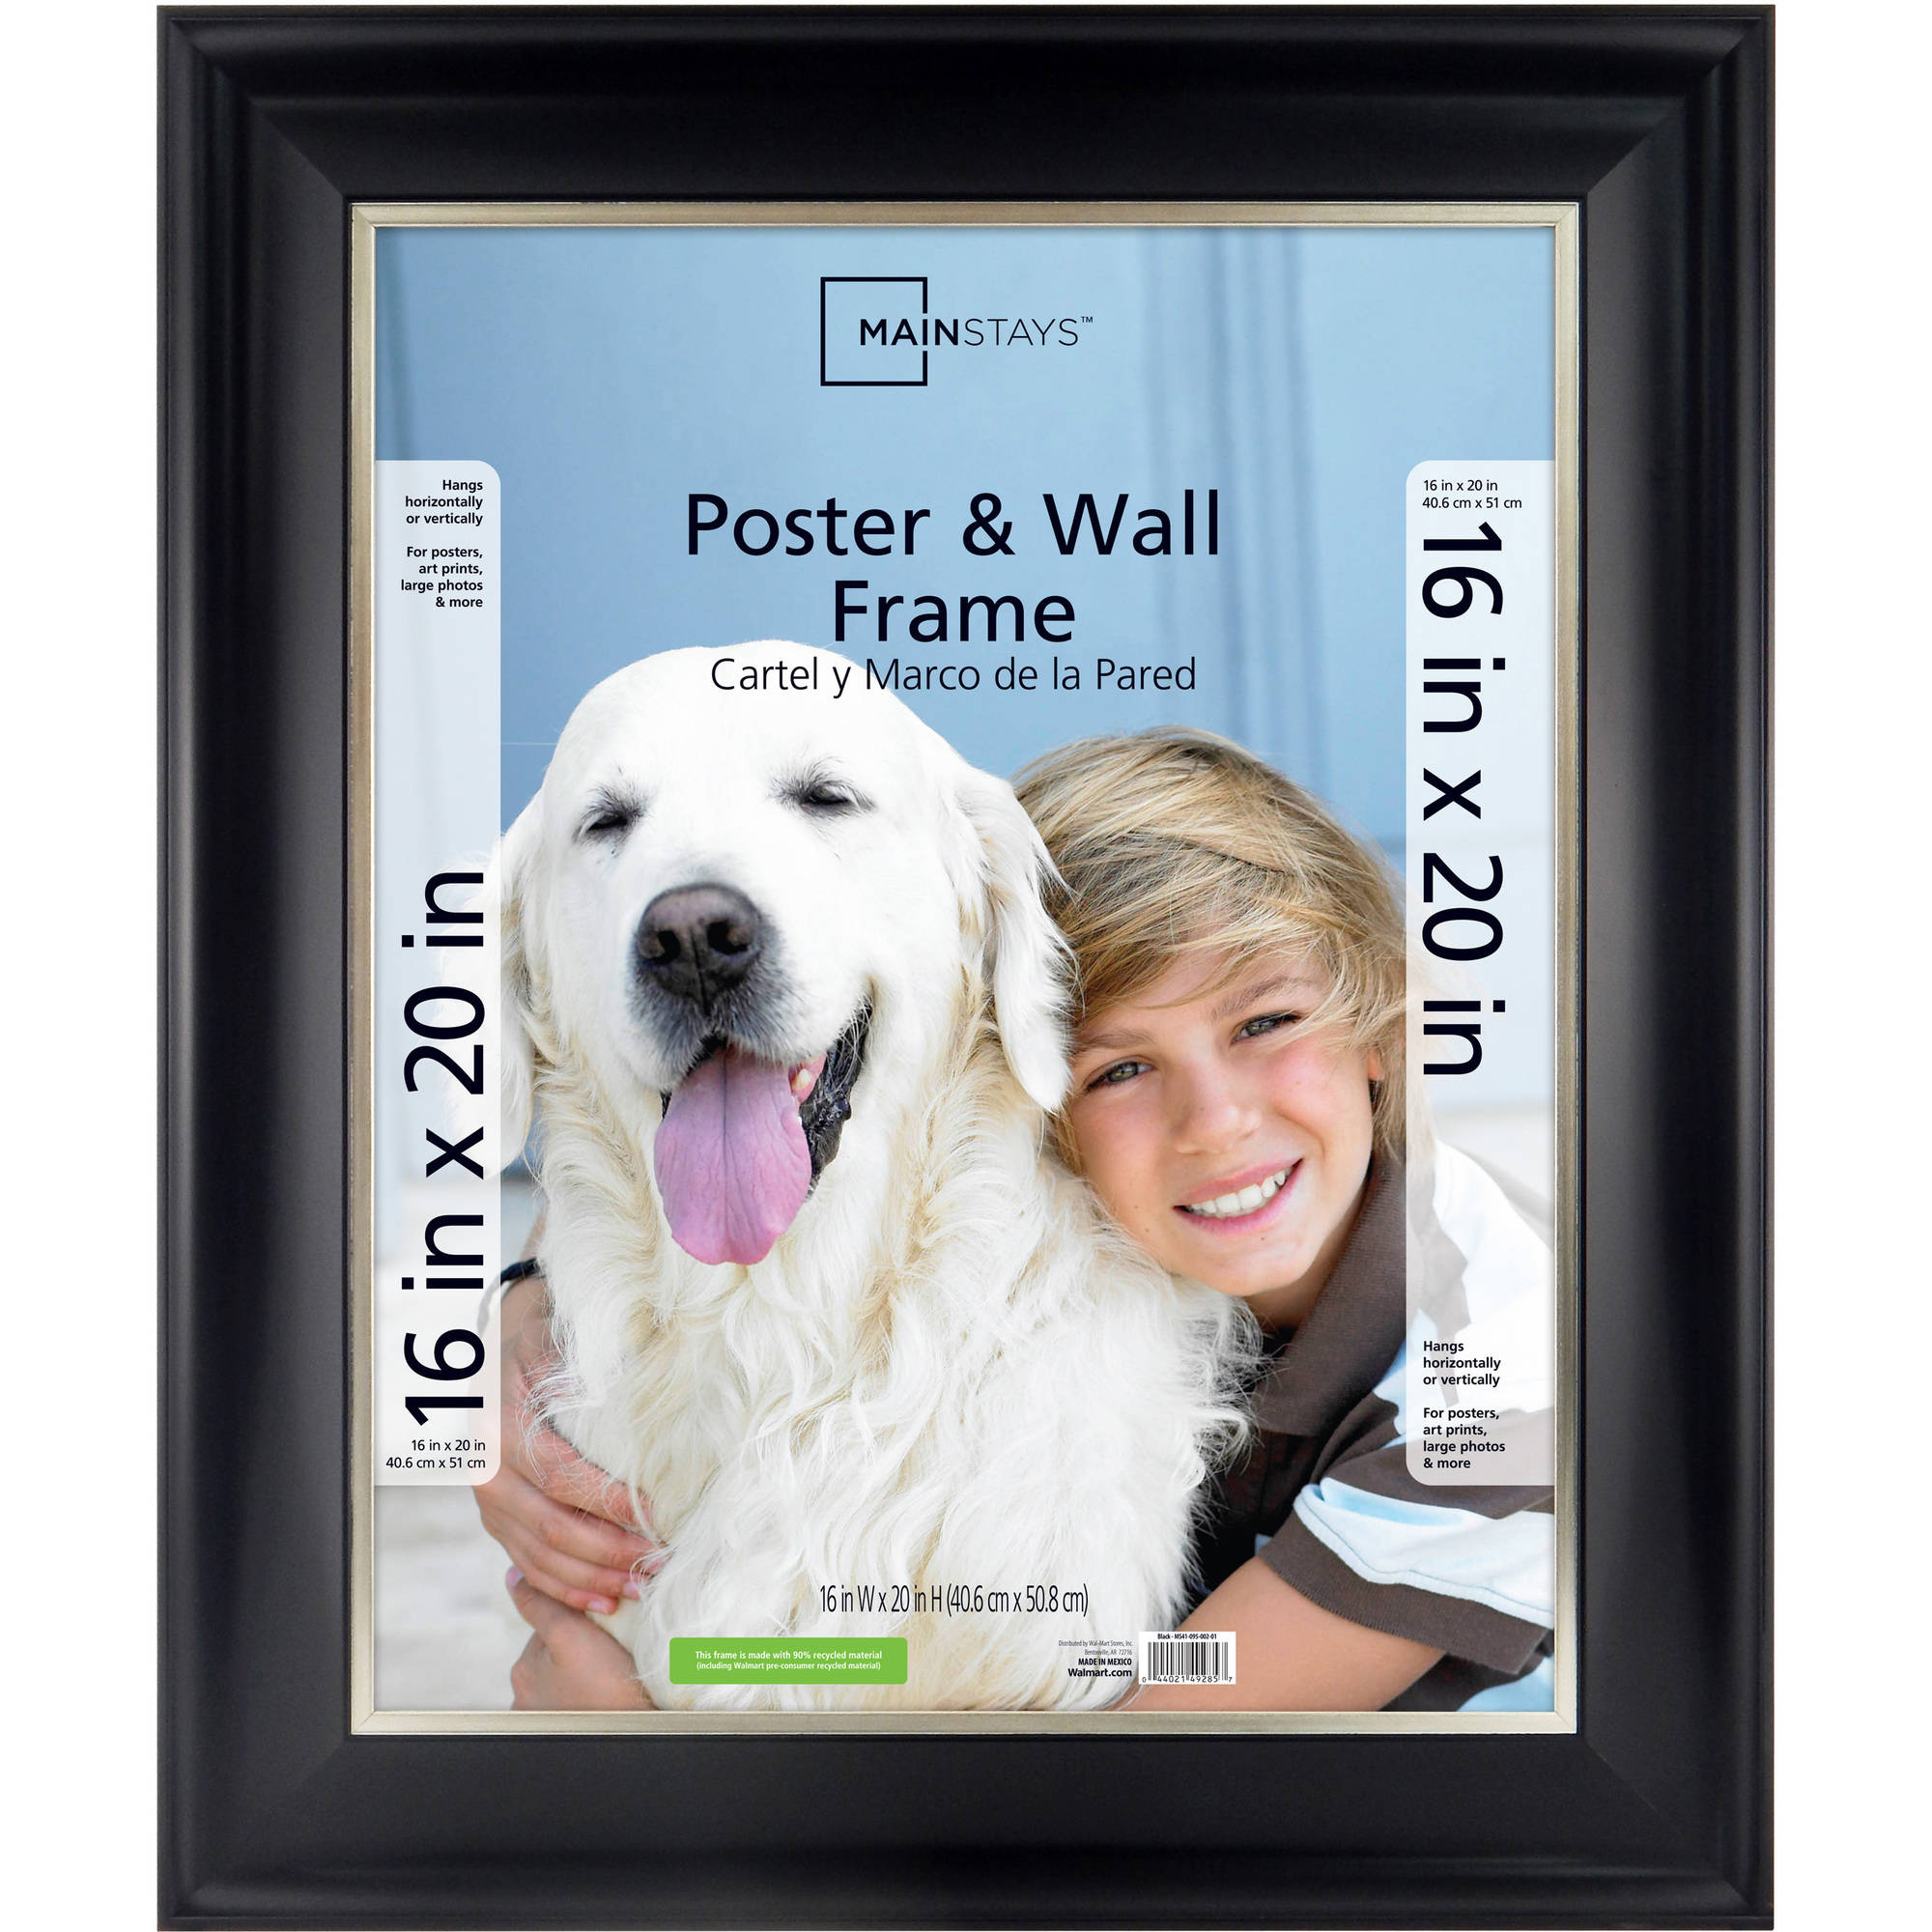 Mainstays 16x20 2-Tone Poster Frame, Black with Champagne - Walmart.com